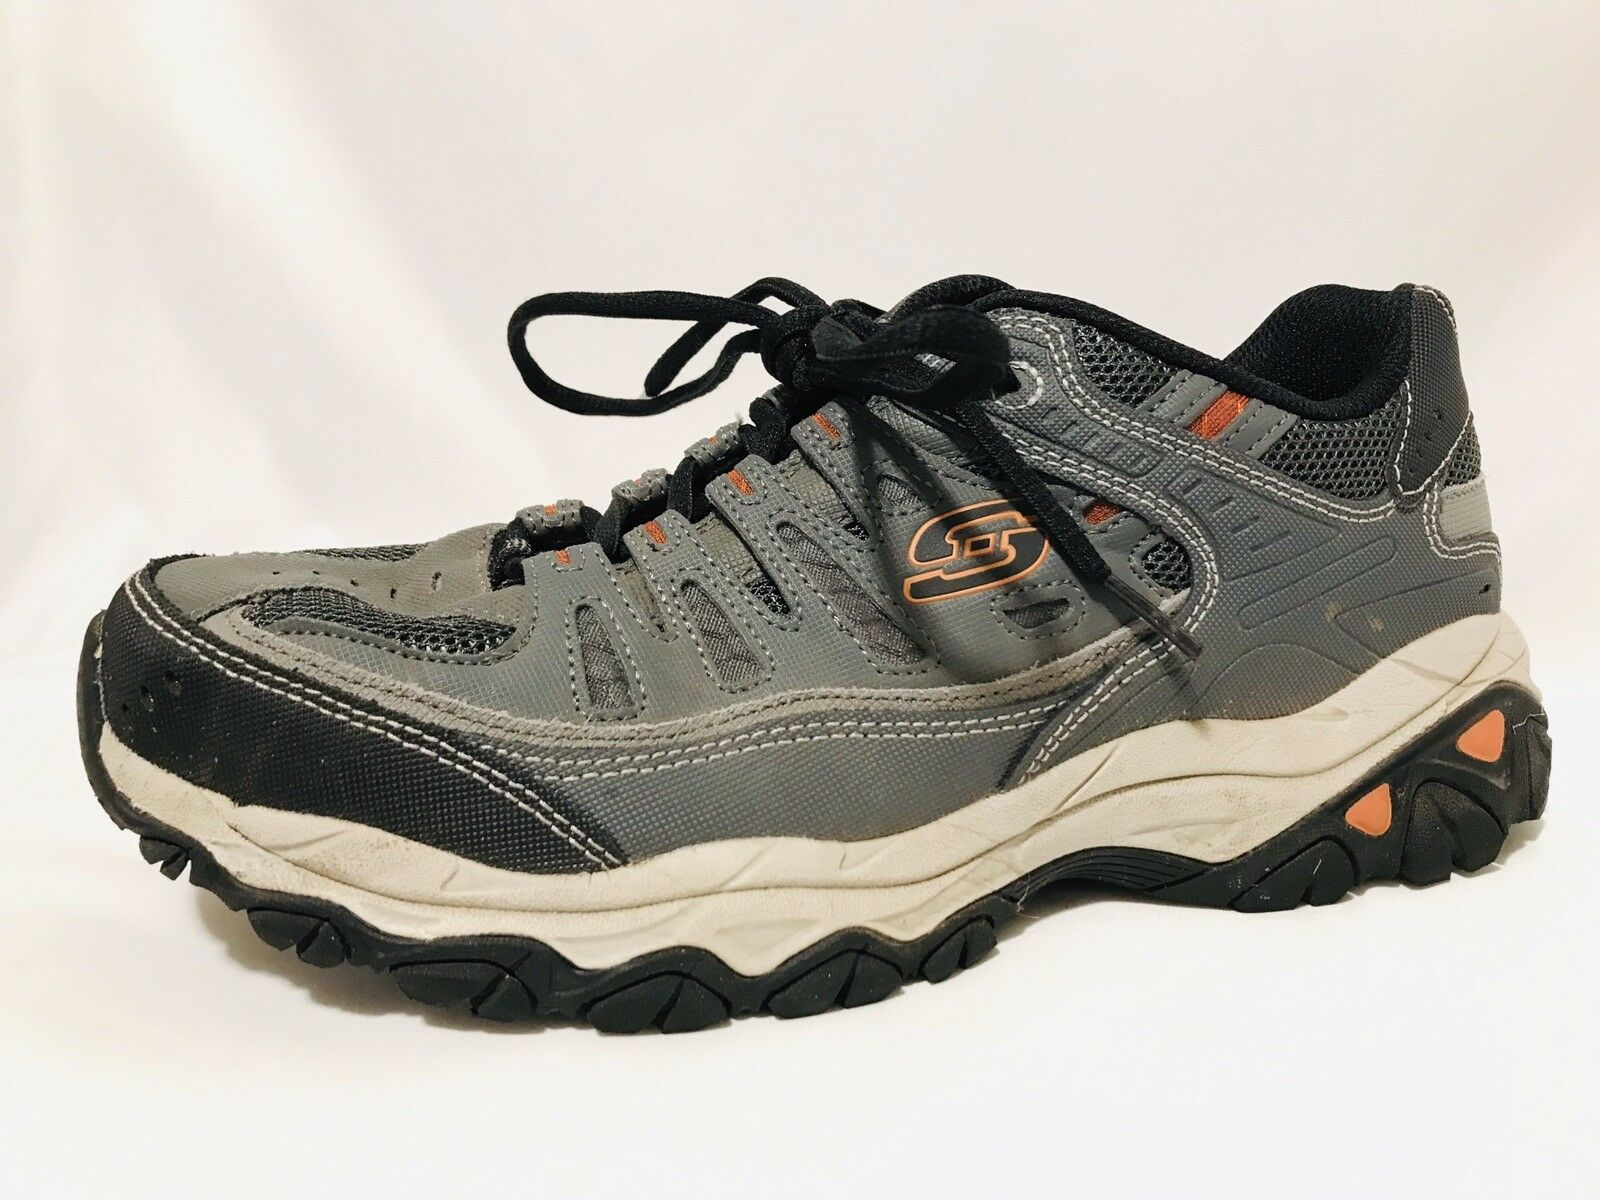 PREOWNED Skechers After Burn - Memory Fit Charcoal  Grey Mens Sneakers Size 9.5